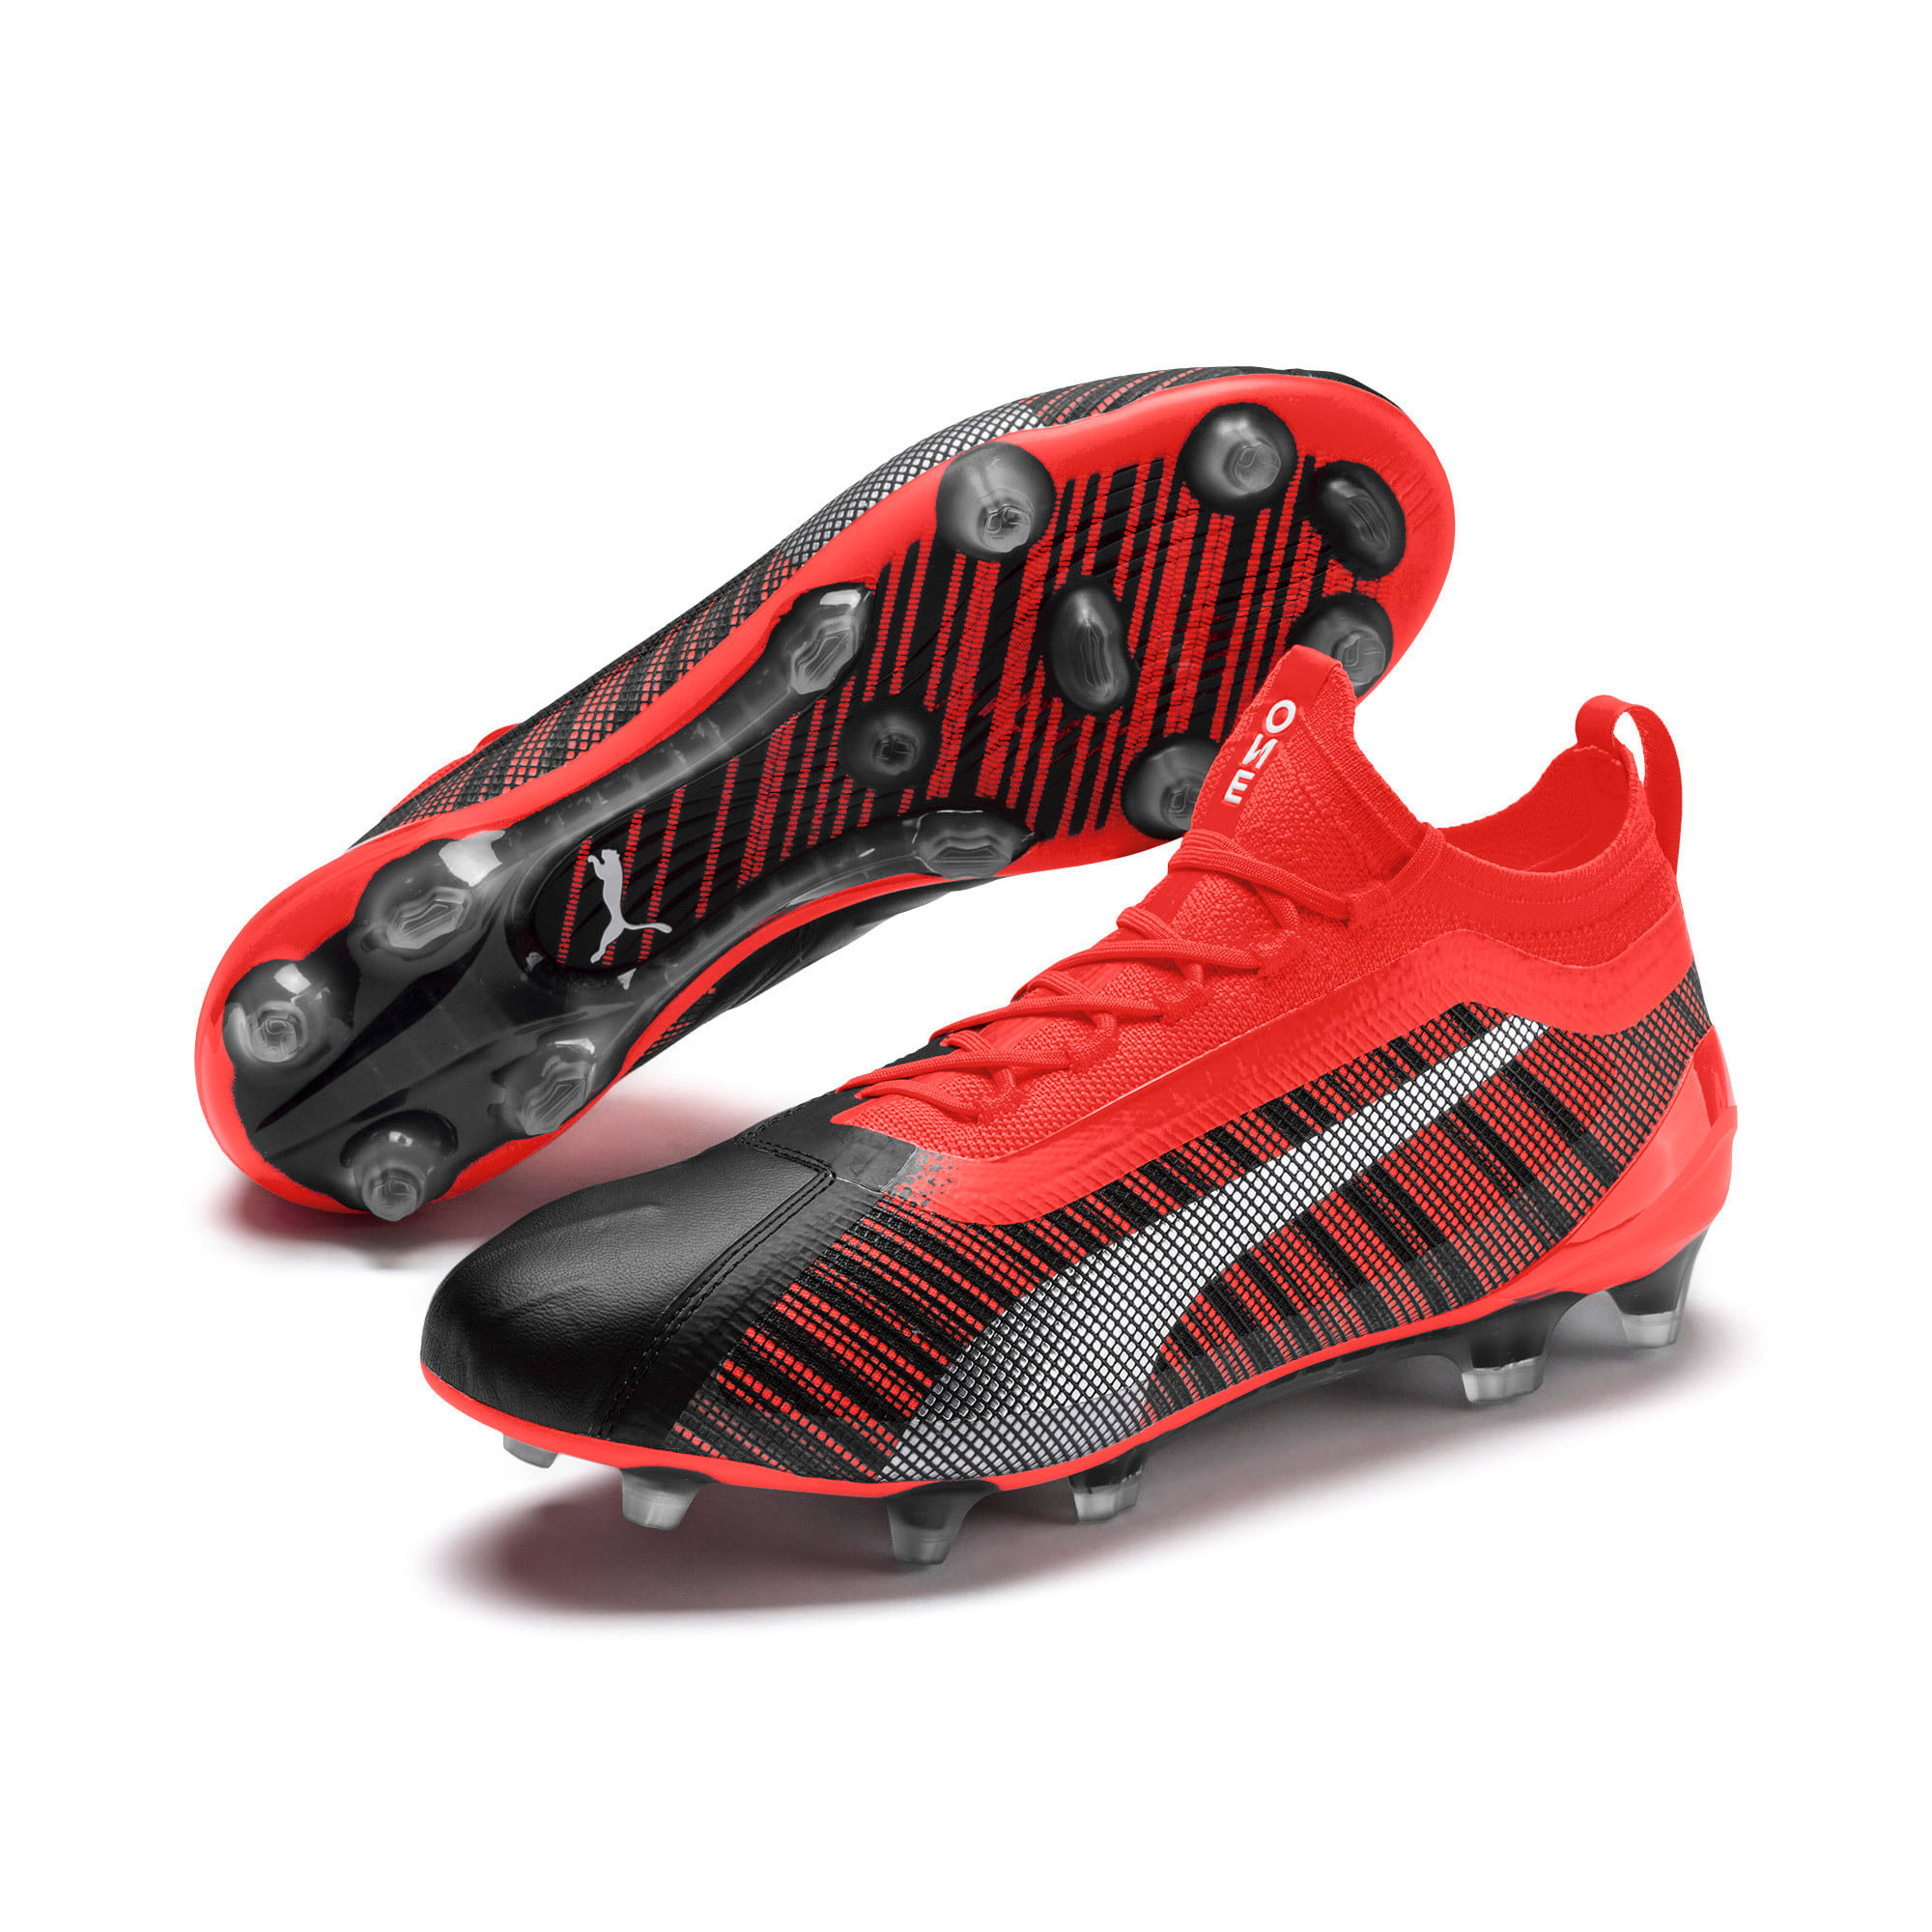 Thumbnail 3 of PUMA ONE 5.1 FG/AG Men's Soccer Cleats, Black-Nrgy Red-Aged Silver, medium